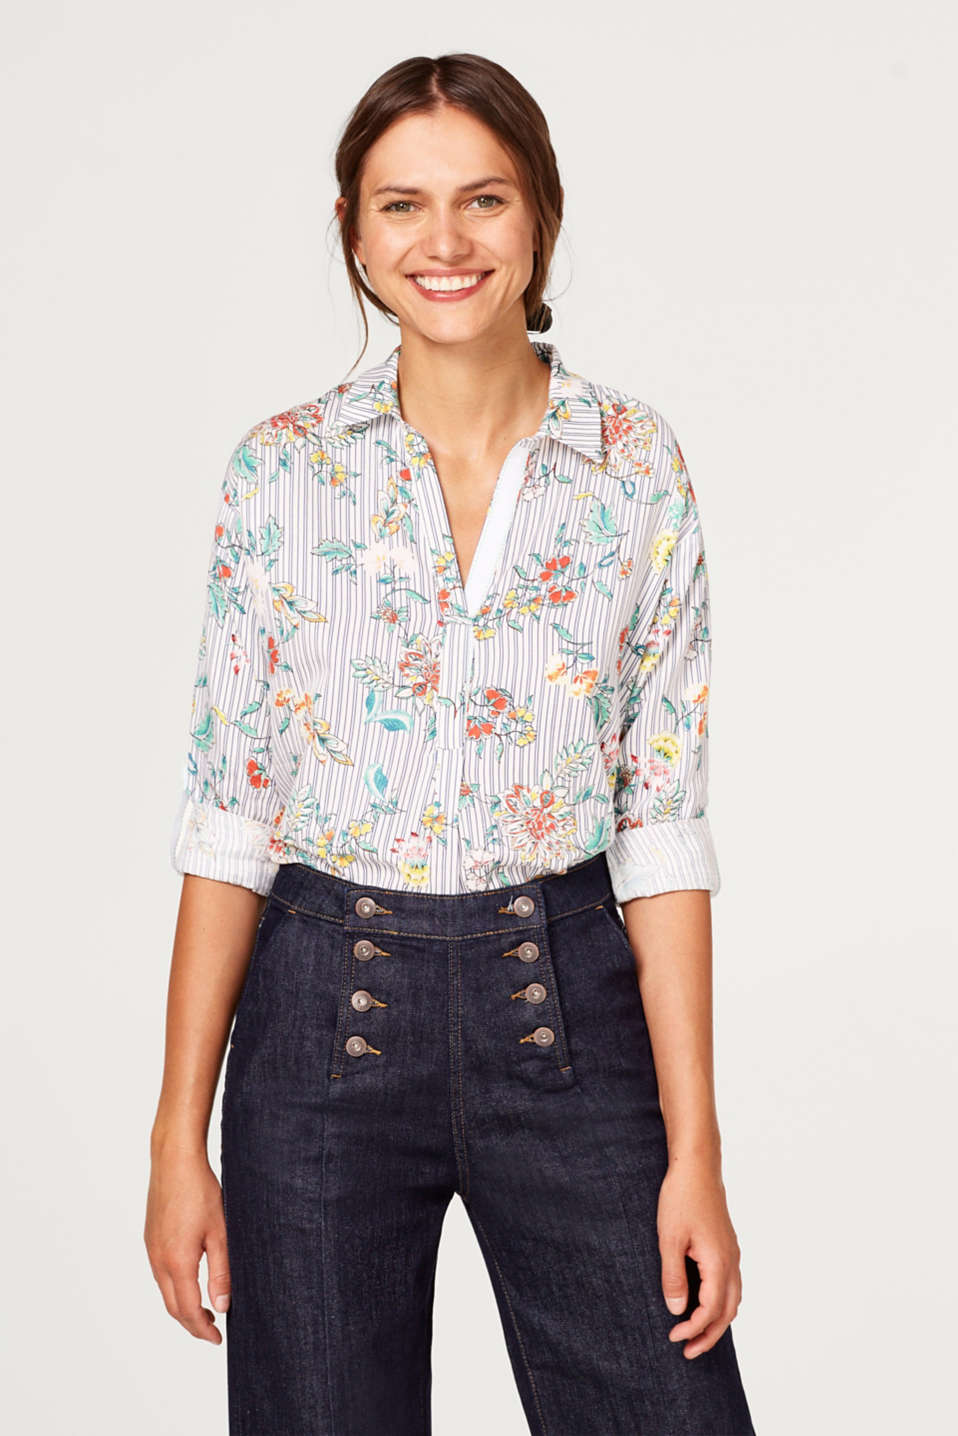 Esprit - Shirt blouse with an all-over print, 100% cotton